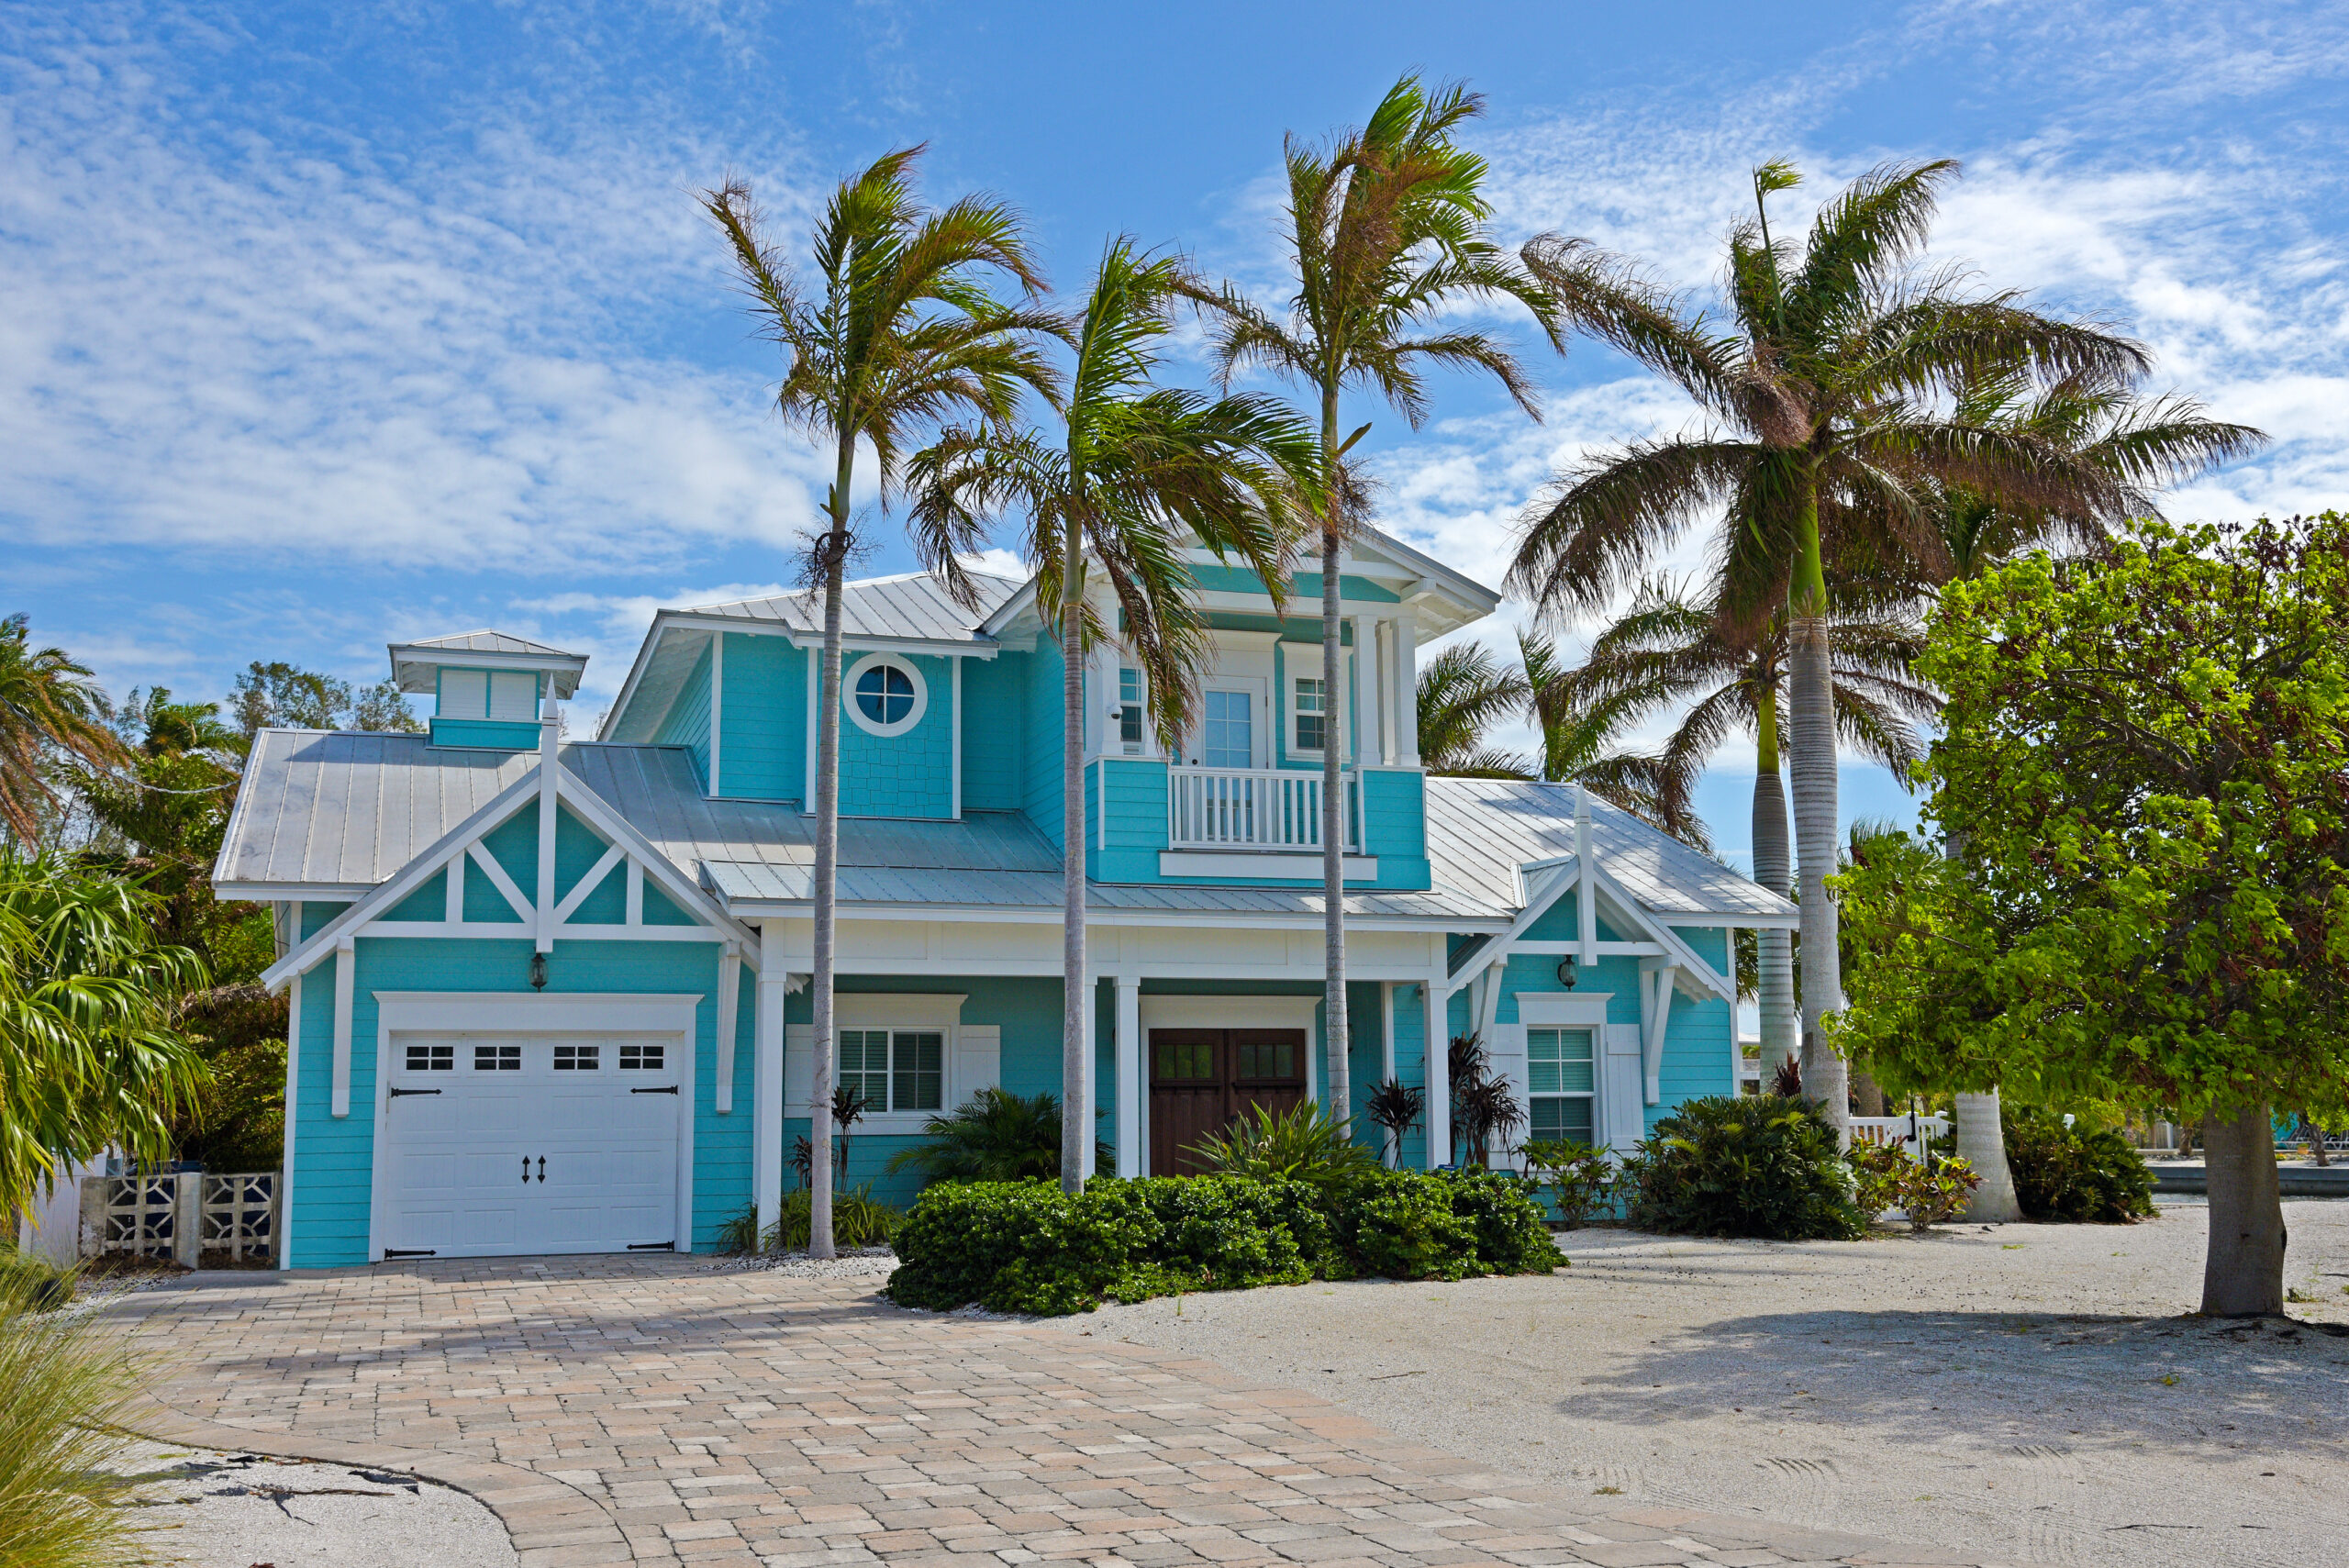 Staying in a vacation home is relatively low risk.